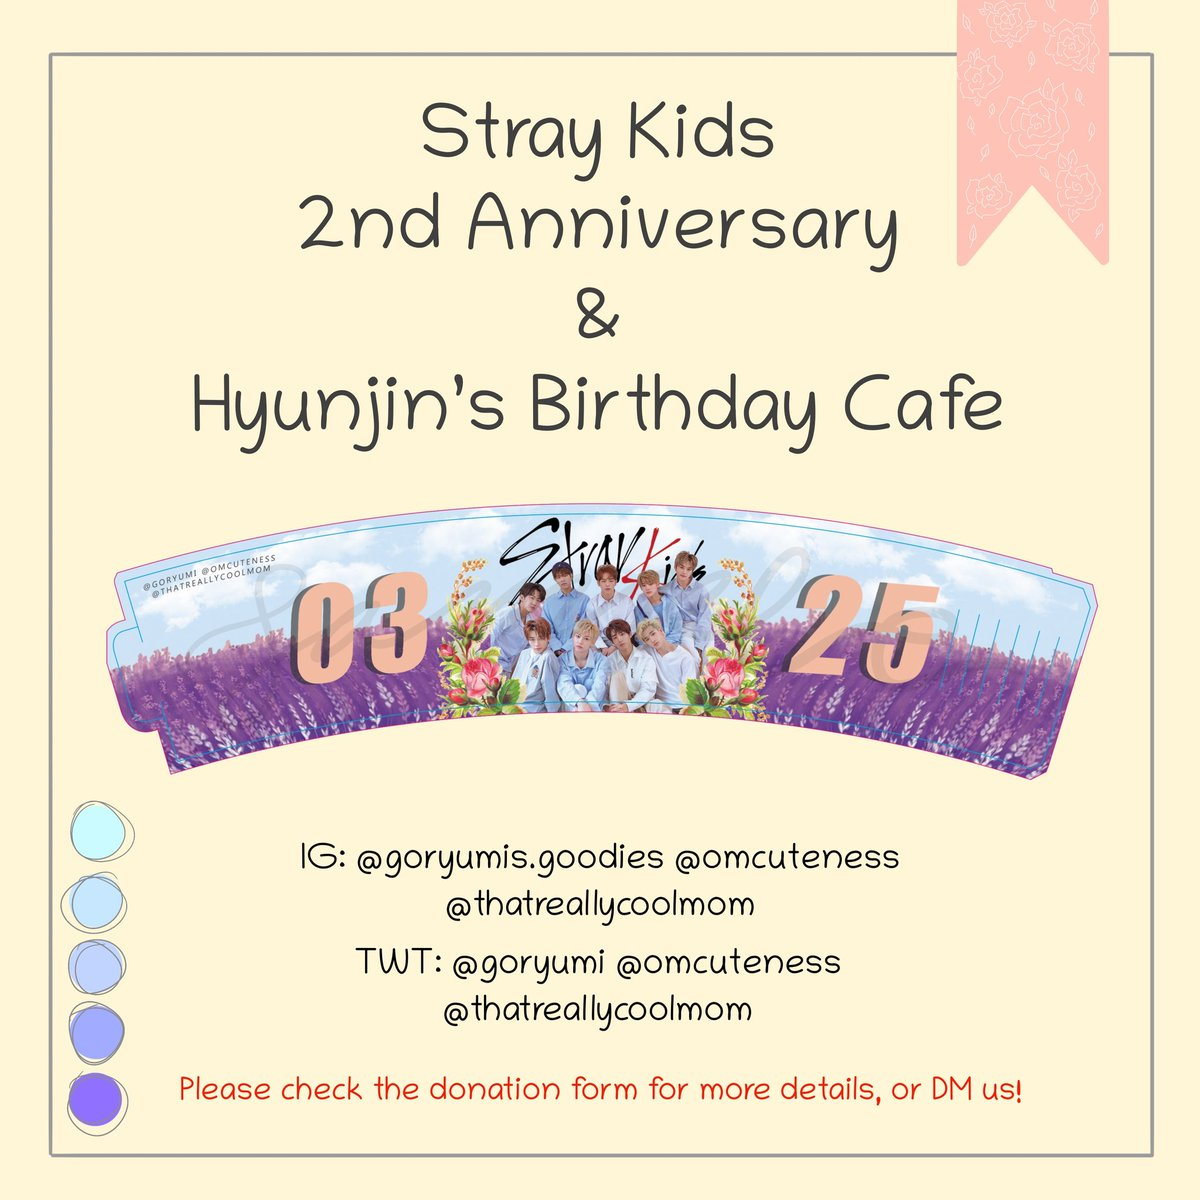 SKZ 2nd Anniversary x Hyunjin's Bday Cafe -- STAY, here is the cupsleeve design for the cafe! DM us if you have any questions   Form:  http:// bit.ly/skzcafeFORM      -- #StrayKidsComeback #SKZUNLOCKinUSA #SKZUnlockinNYC #straykidseverywhereallaroundtheworld #straykidscafe #straykidsnyc<br>http://pic.twitter.com/etjIincRQd